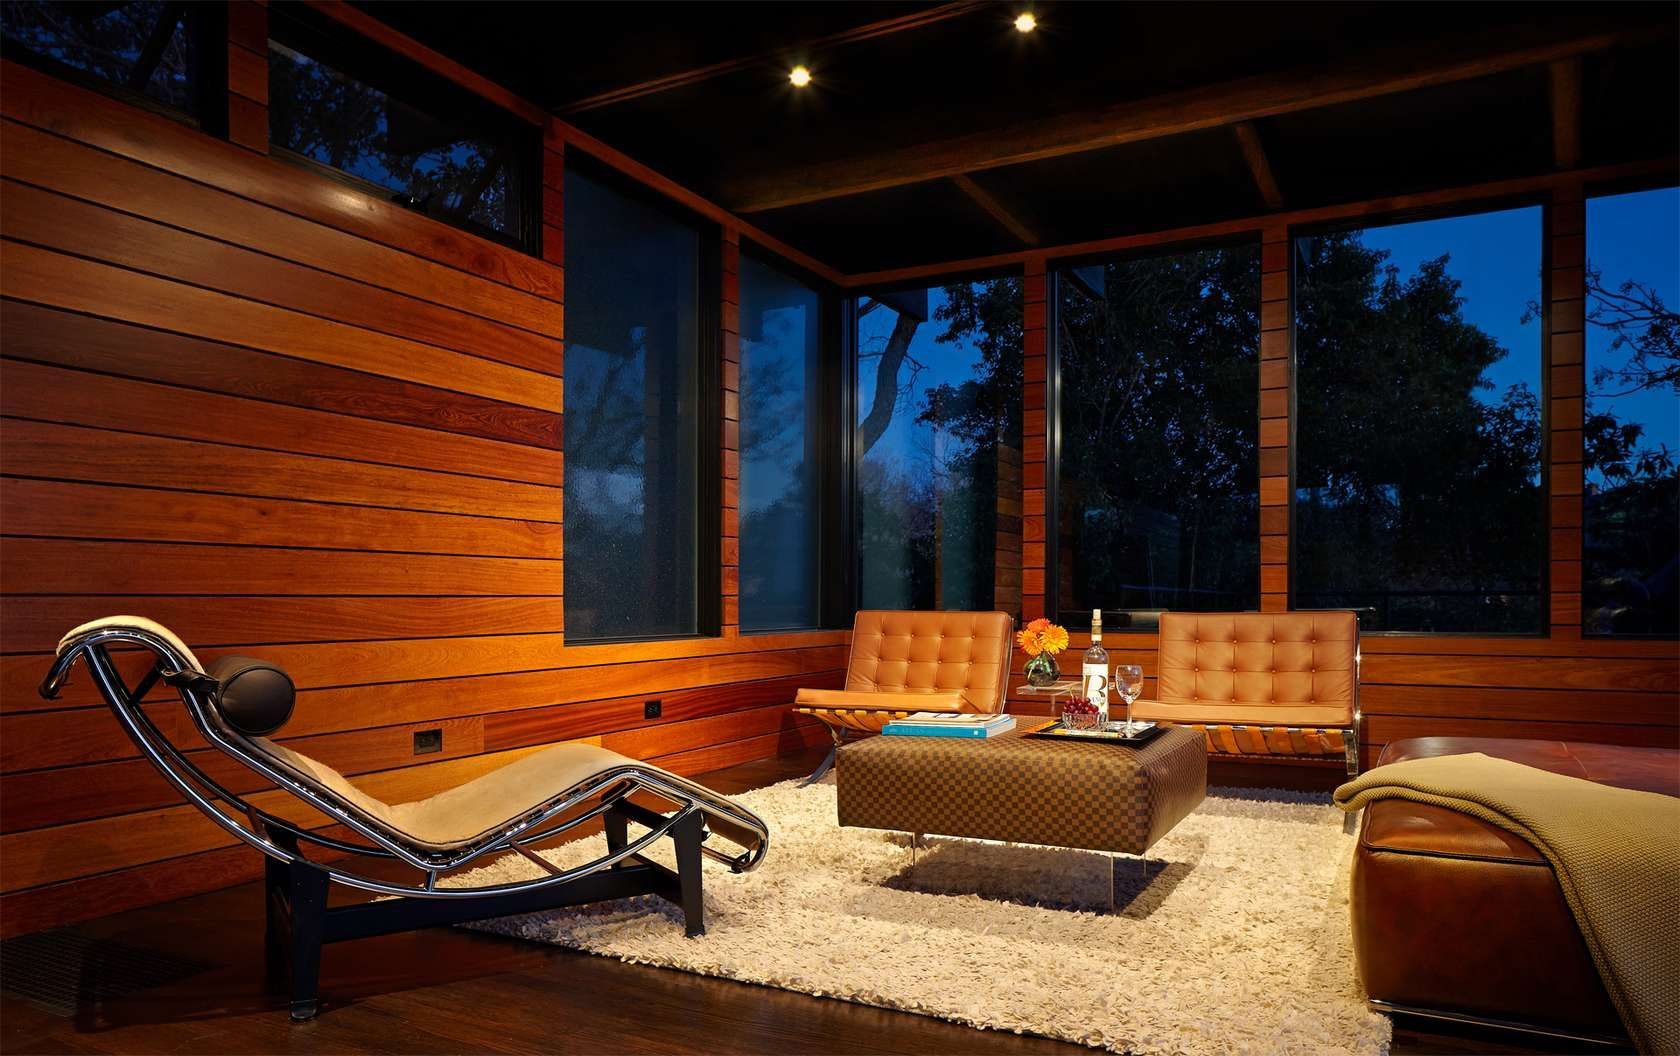 Beautiful Outdoor Views Traditional Living Room Design In The Night With Wooden Wall And Bright Interior